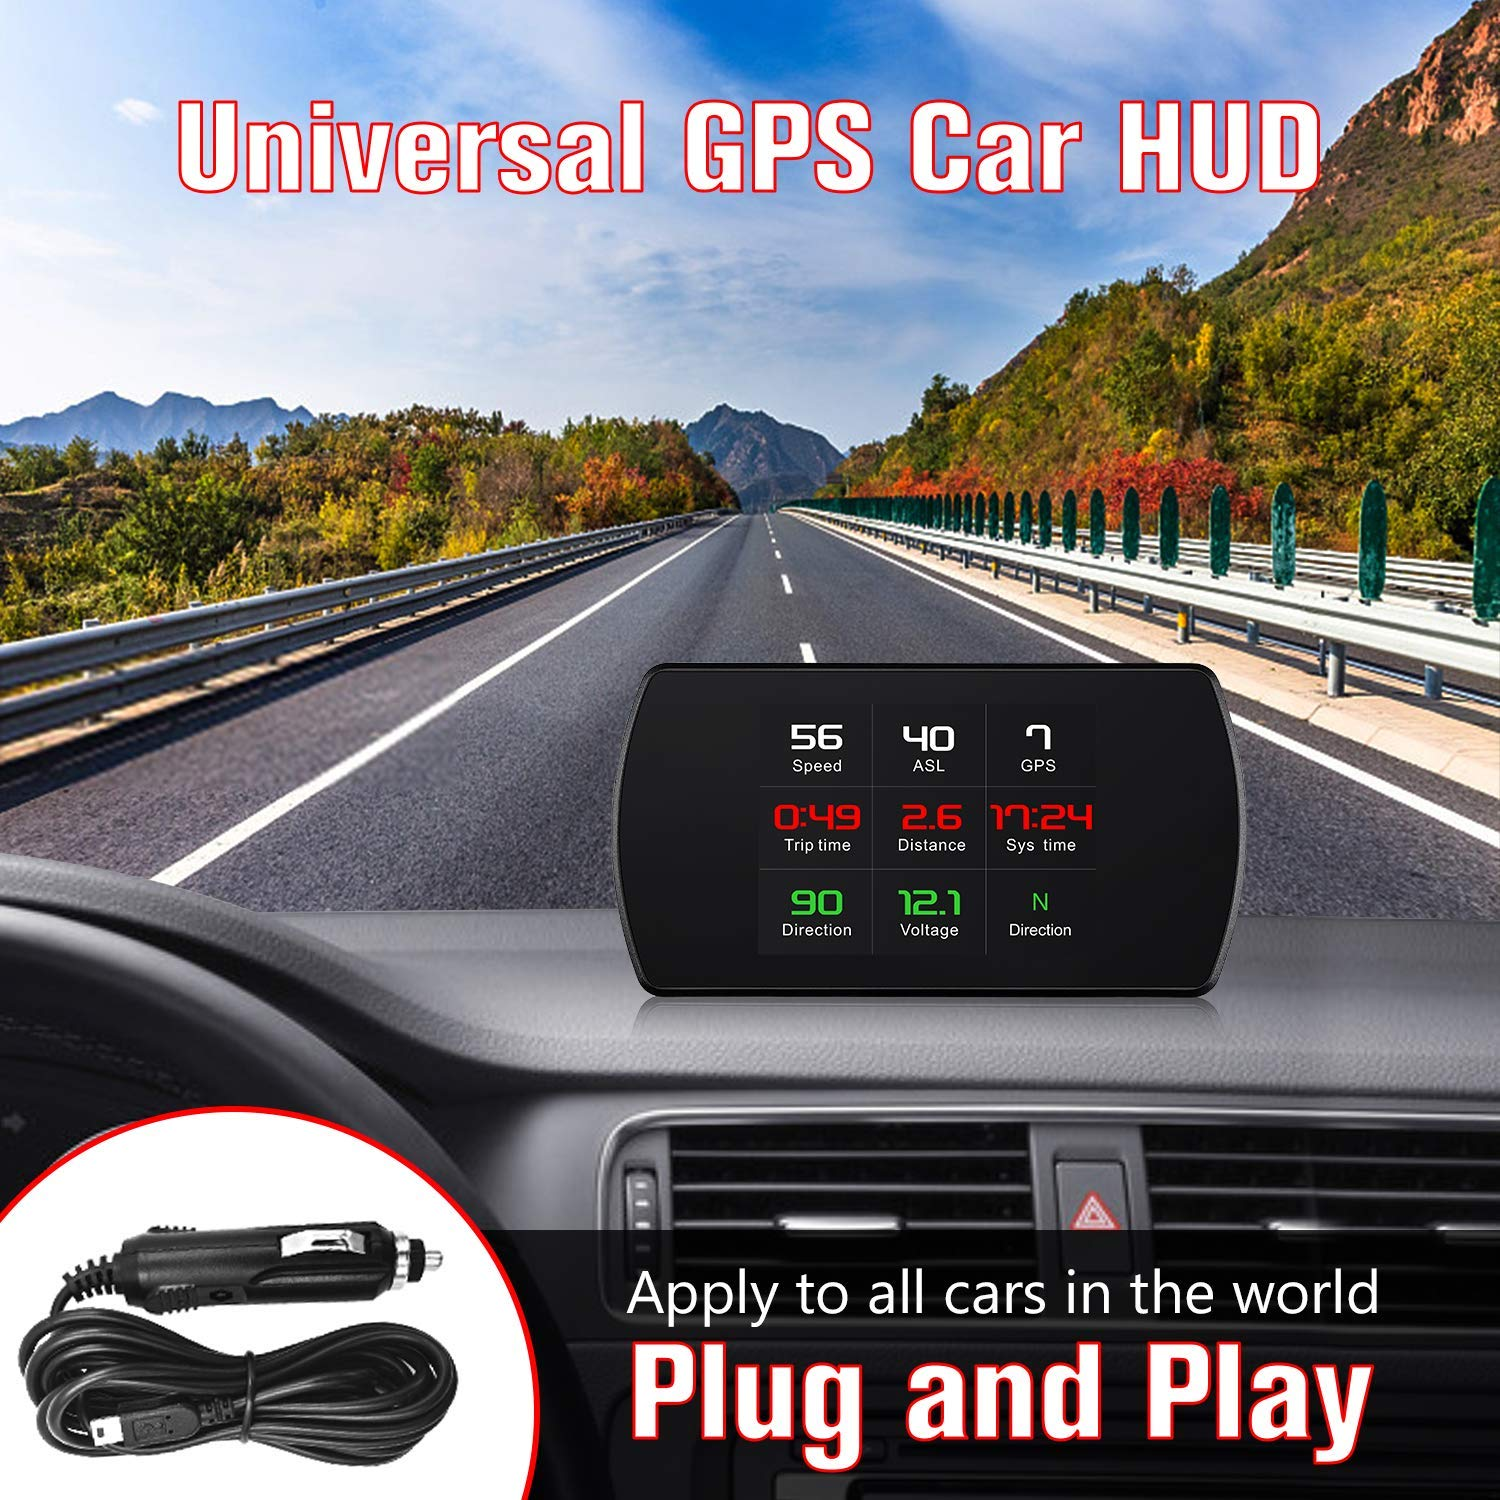 ACECAR Upgrade T800 Universal Car HUD Head Up Display Digital GPS Speedometer with Compass Driving Latitude and Longitude Speedup Test Brake Test Overspeed Alarm HD LCD Display for All Vehicle